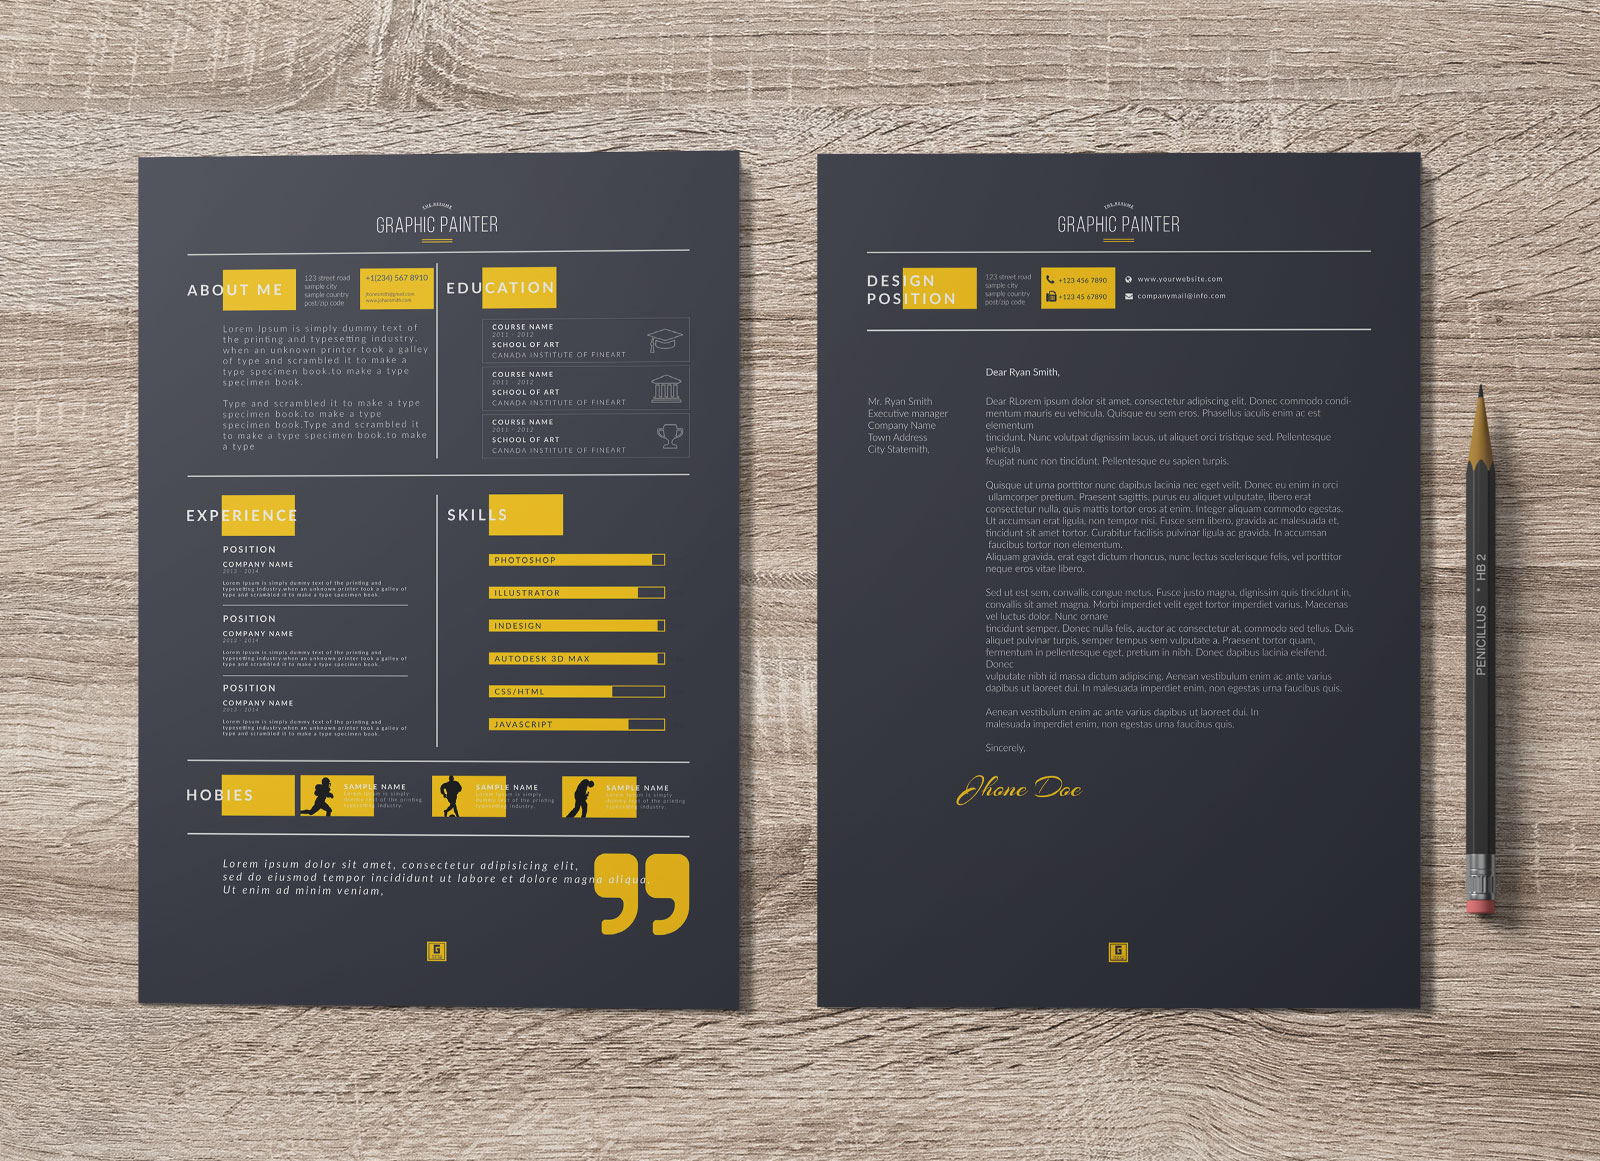 Free-Dark-&-Light-PSD-&-Word-Resume-Template,-Cover-Letter-&-Portfolio-Design (1)